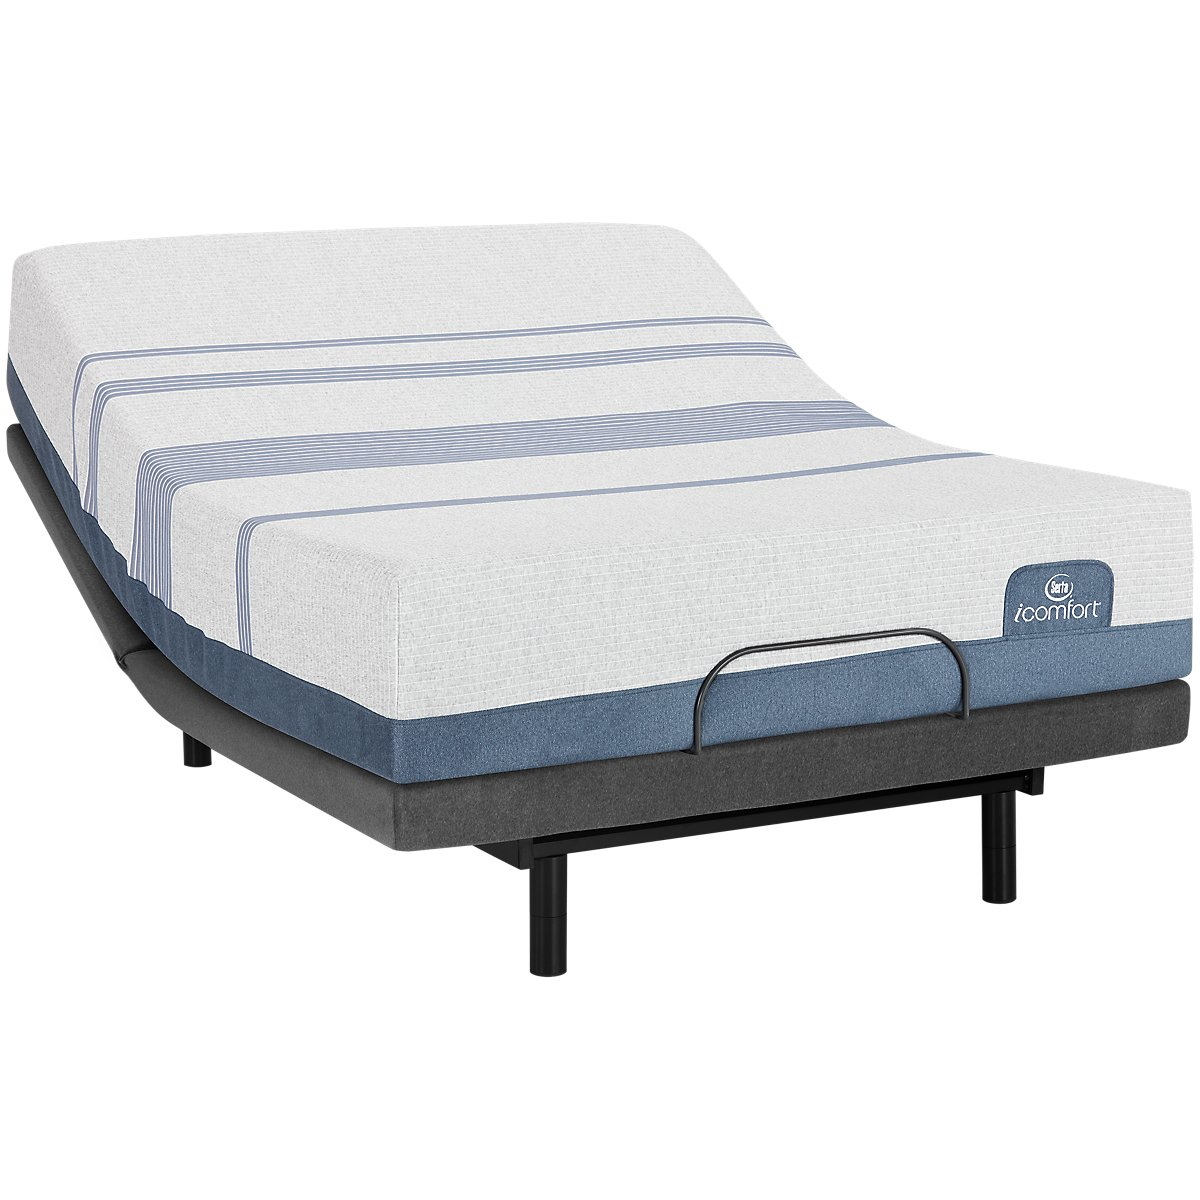 Serta iComfort Blue Max 1000 Plush Select Adjustable Mattress Set